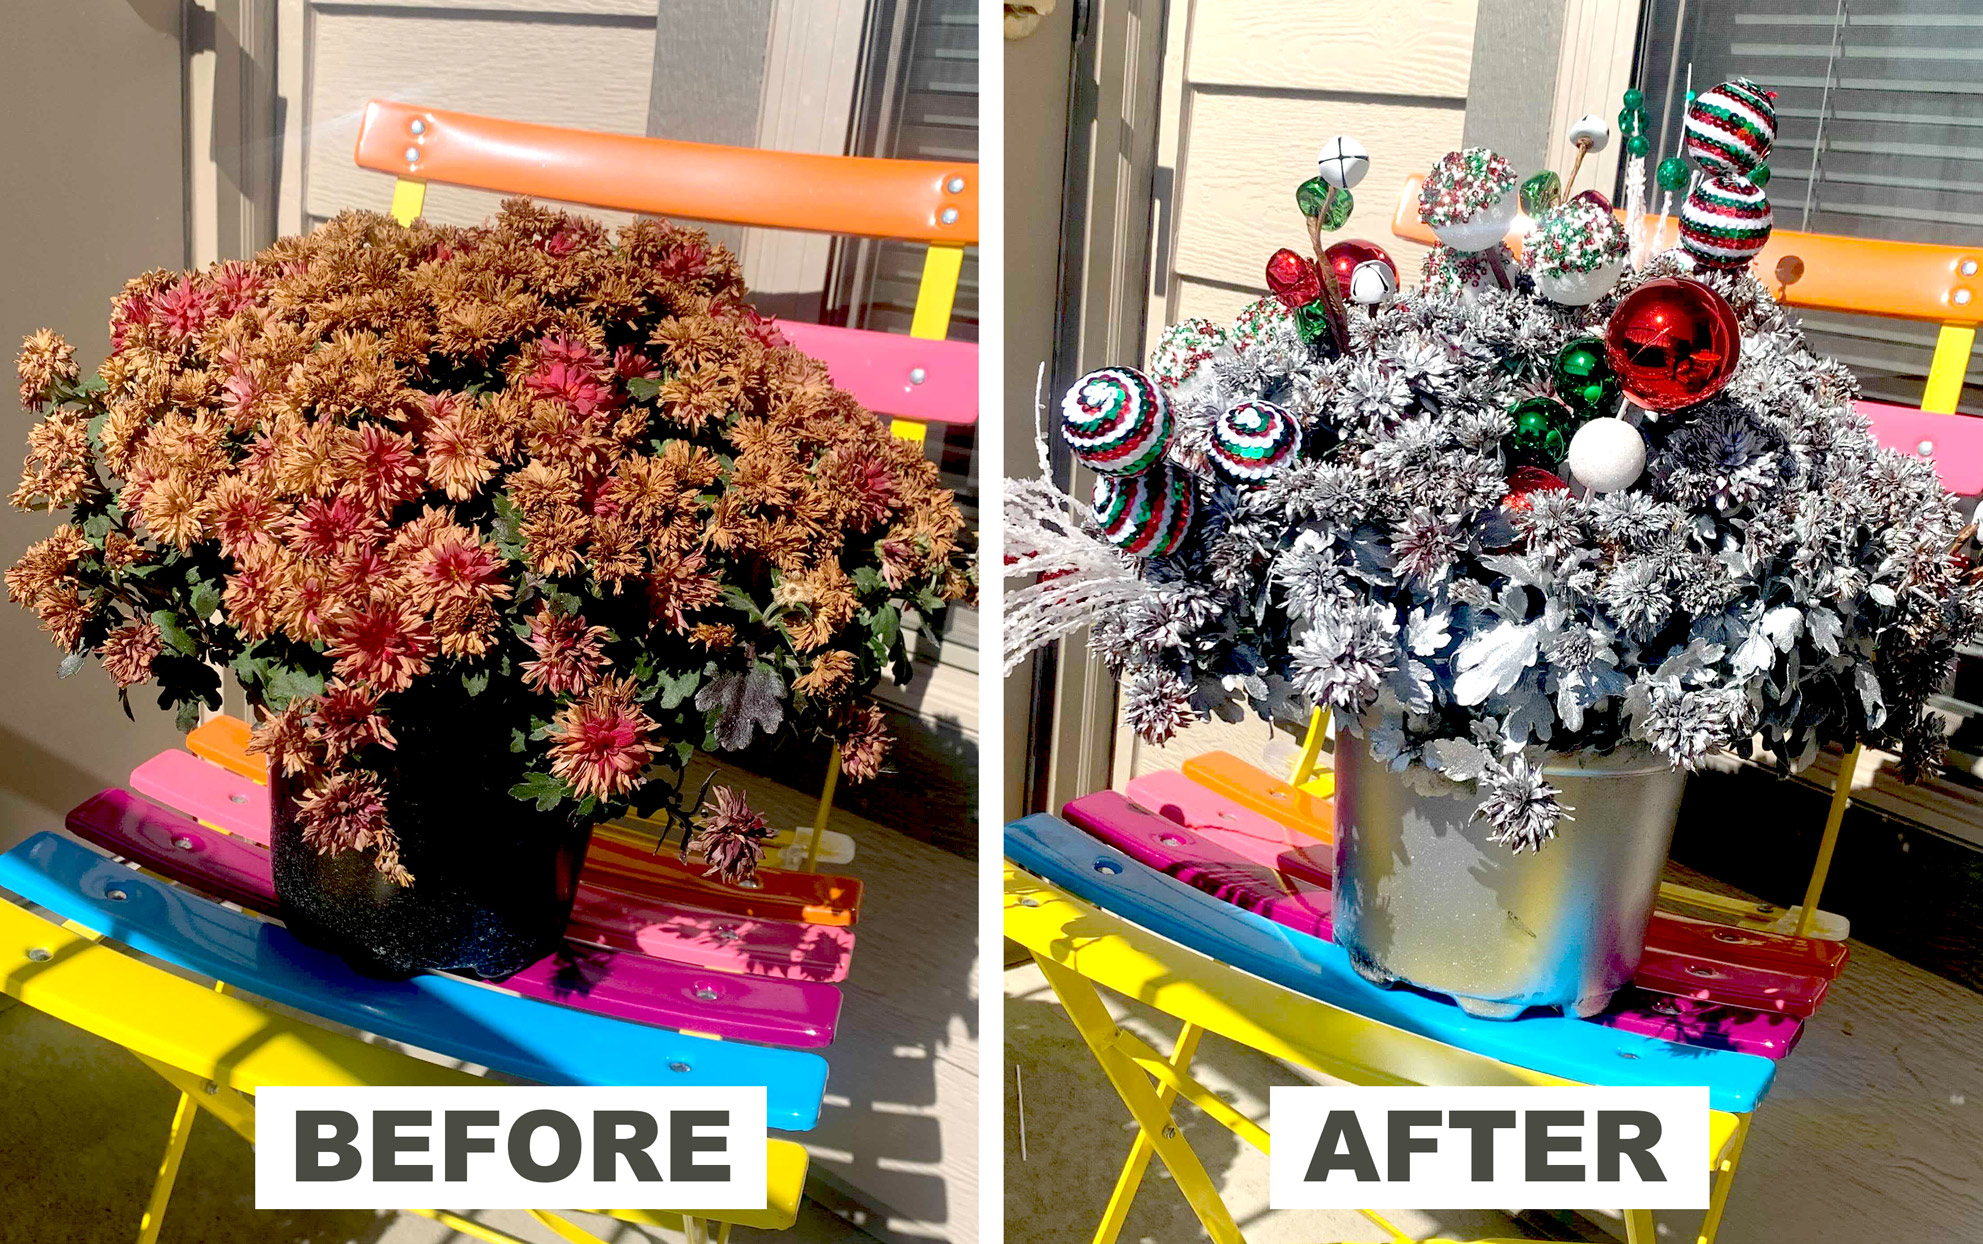 before and after of old mums on a chair and Christmas decorated mums on a chair